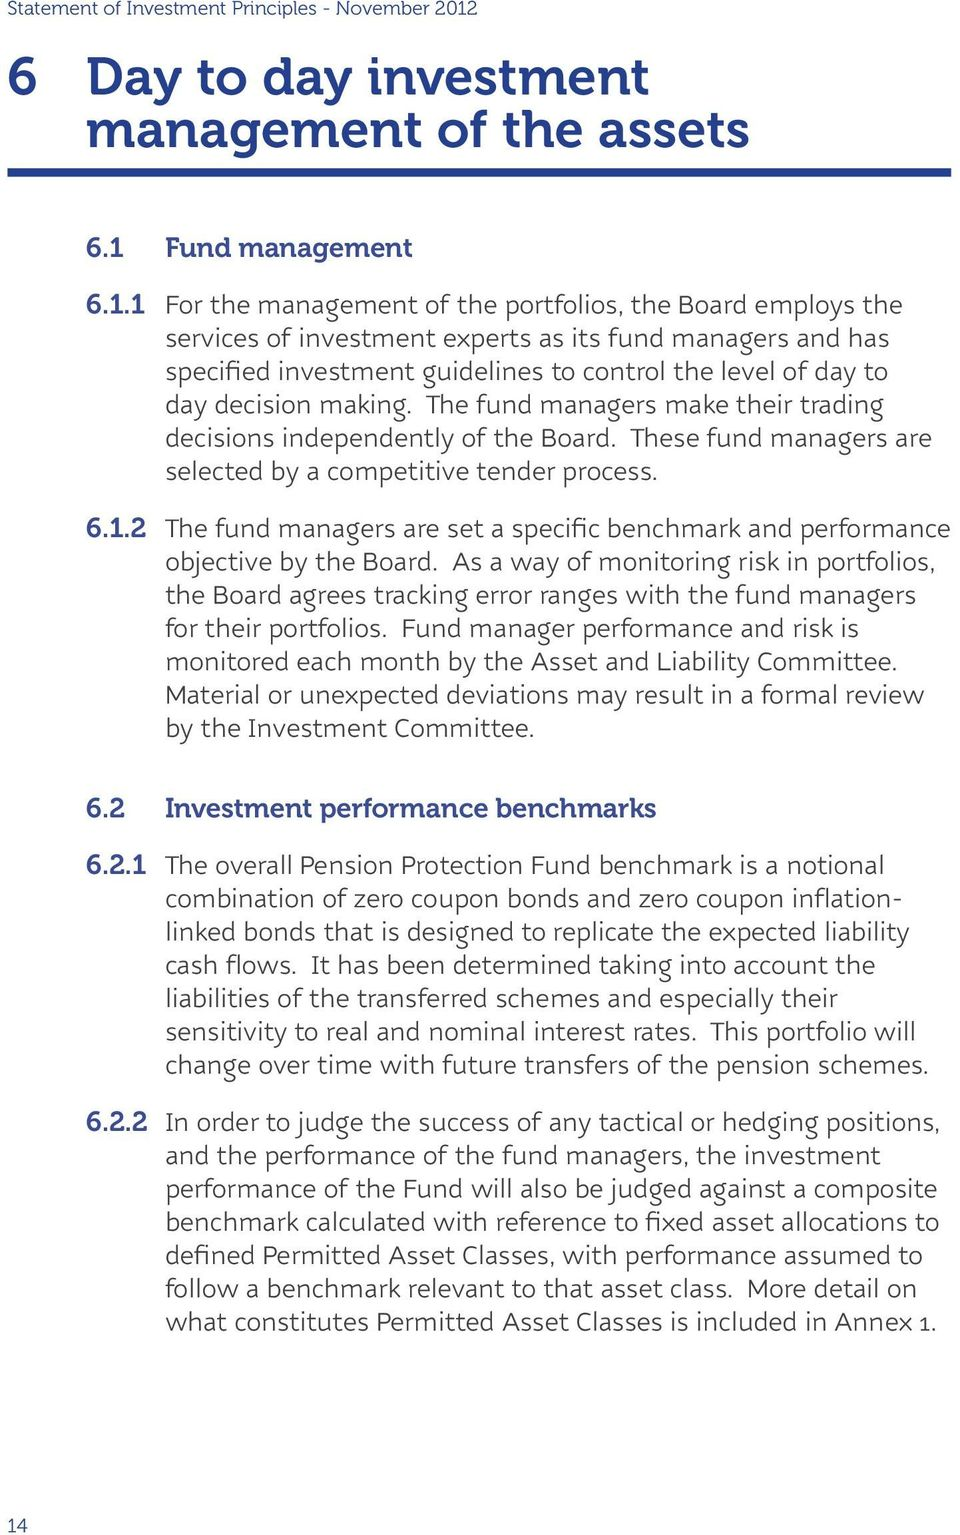 1 For the management of the portfolios, the Board employs the services of investment experts as its fund managers and has specified investment guidelines to control the level of day to day decision